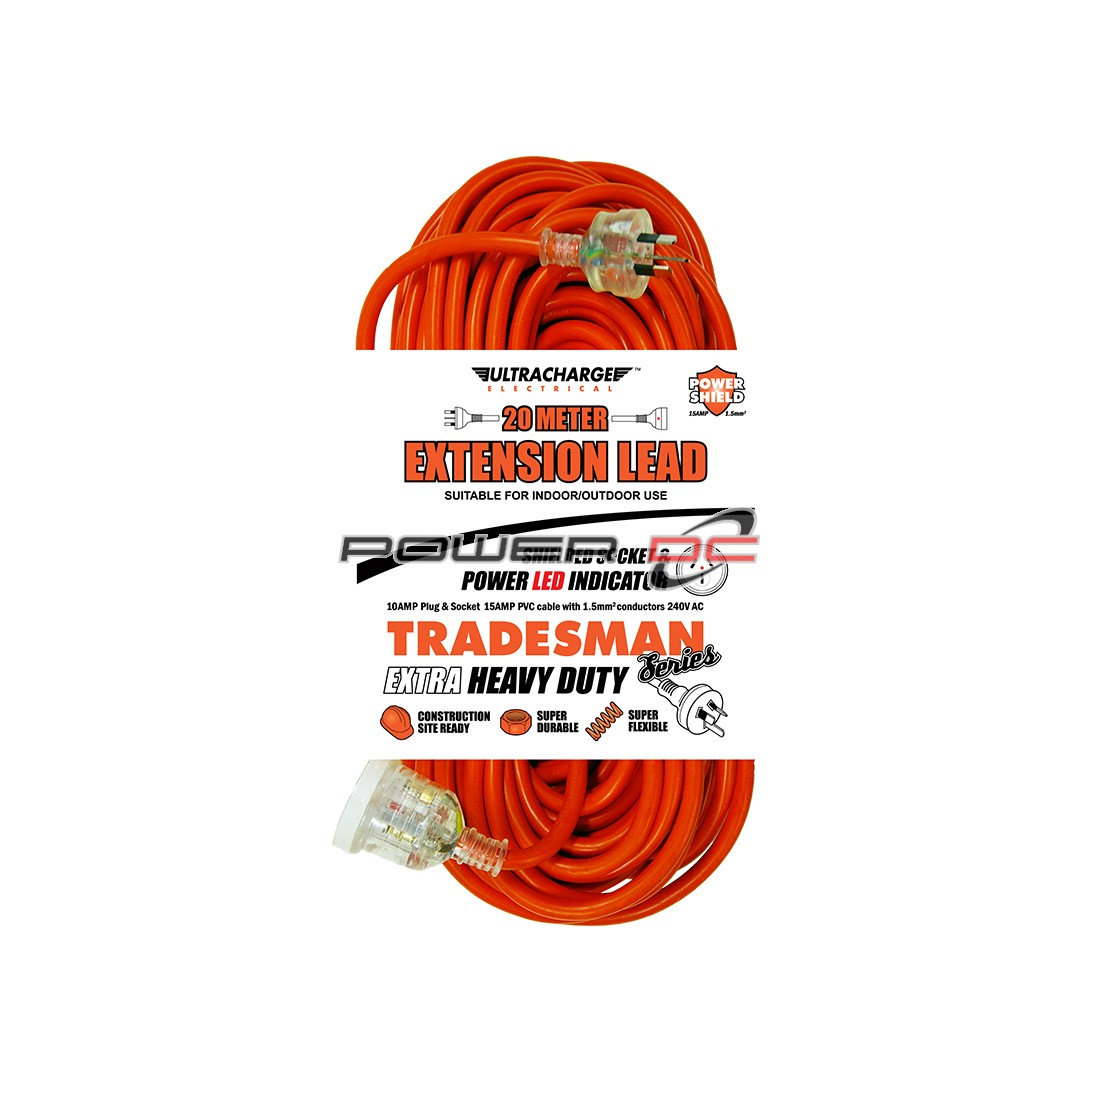 ULTRACHARGE TRADESMAN 20M HEAVY DUTY EXT LEAD